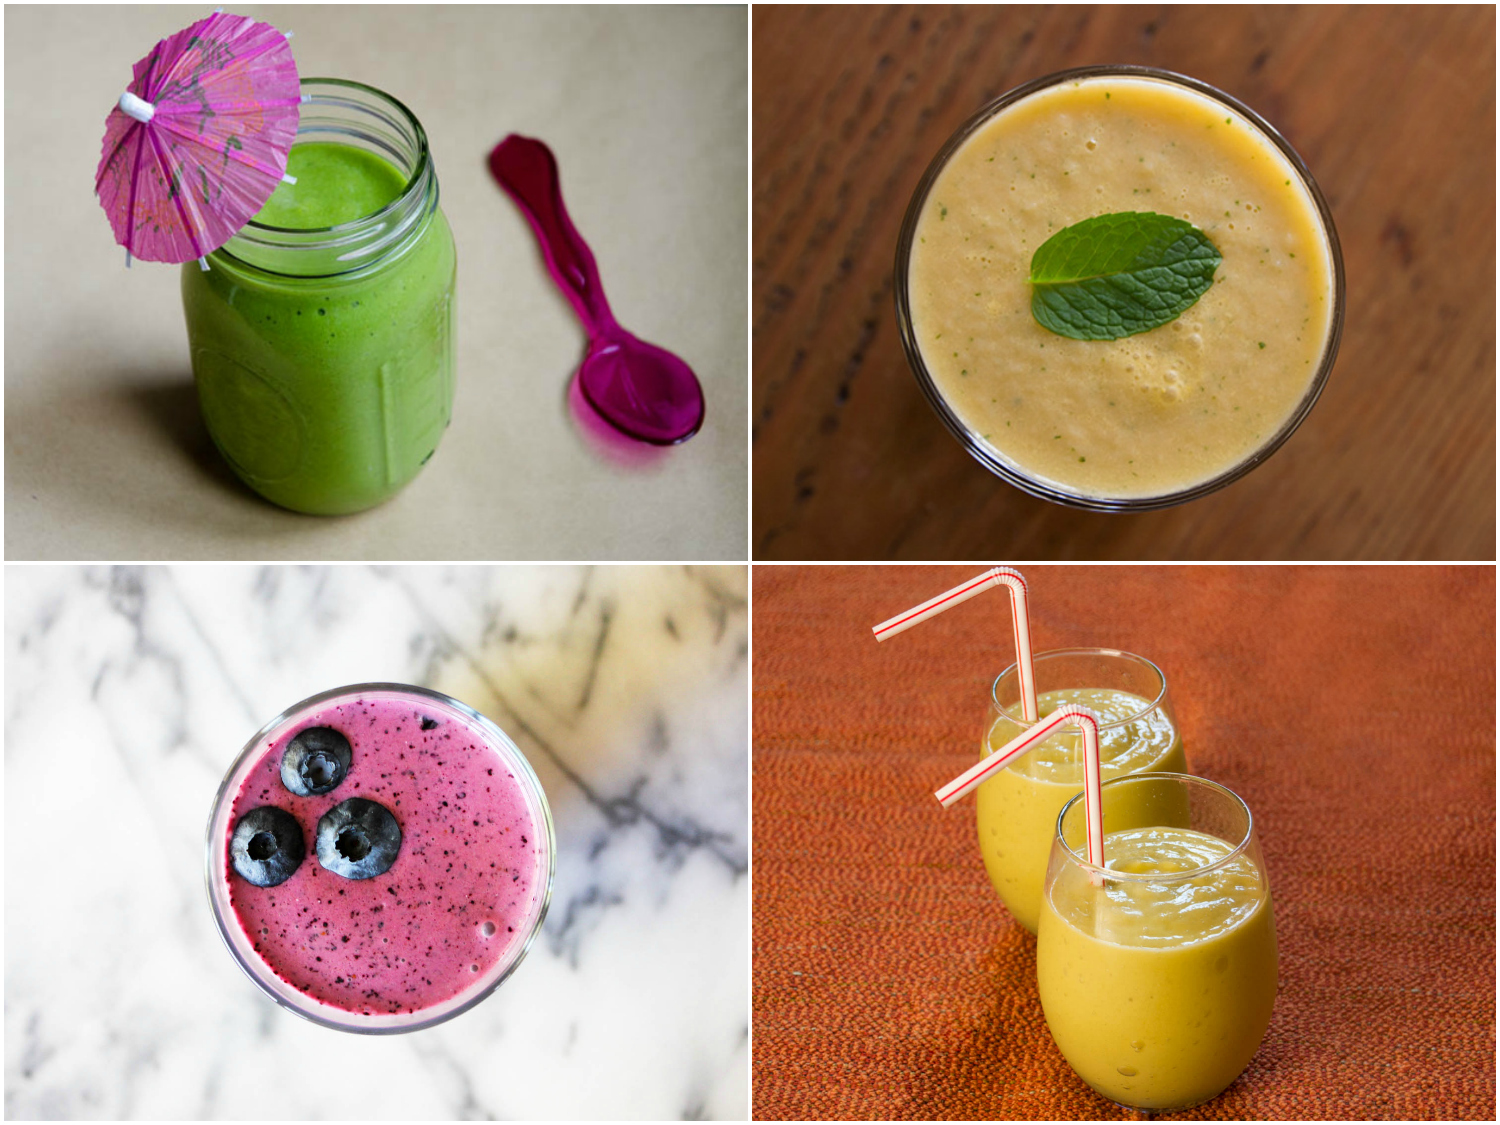 20161218-smoothie-recipes-roundup-collage.jpg